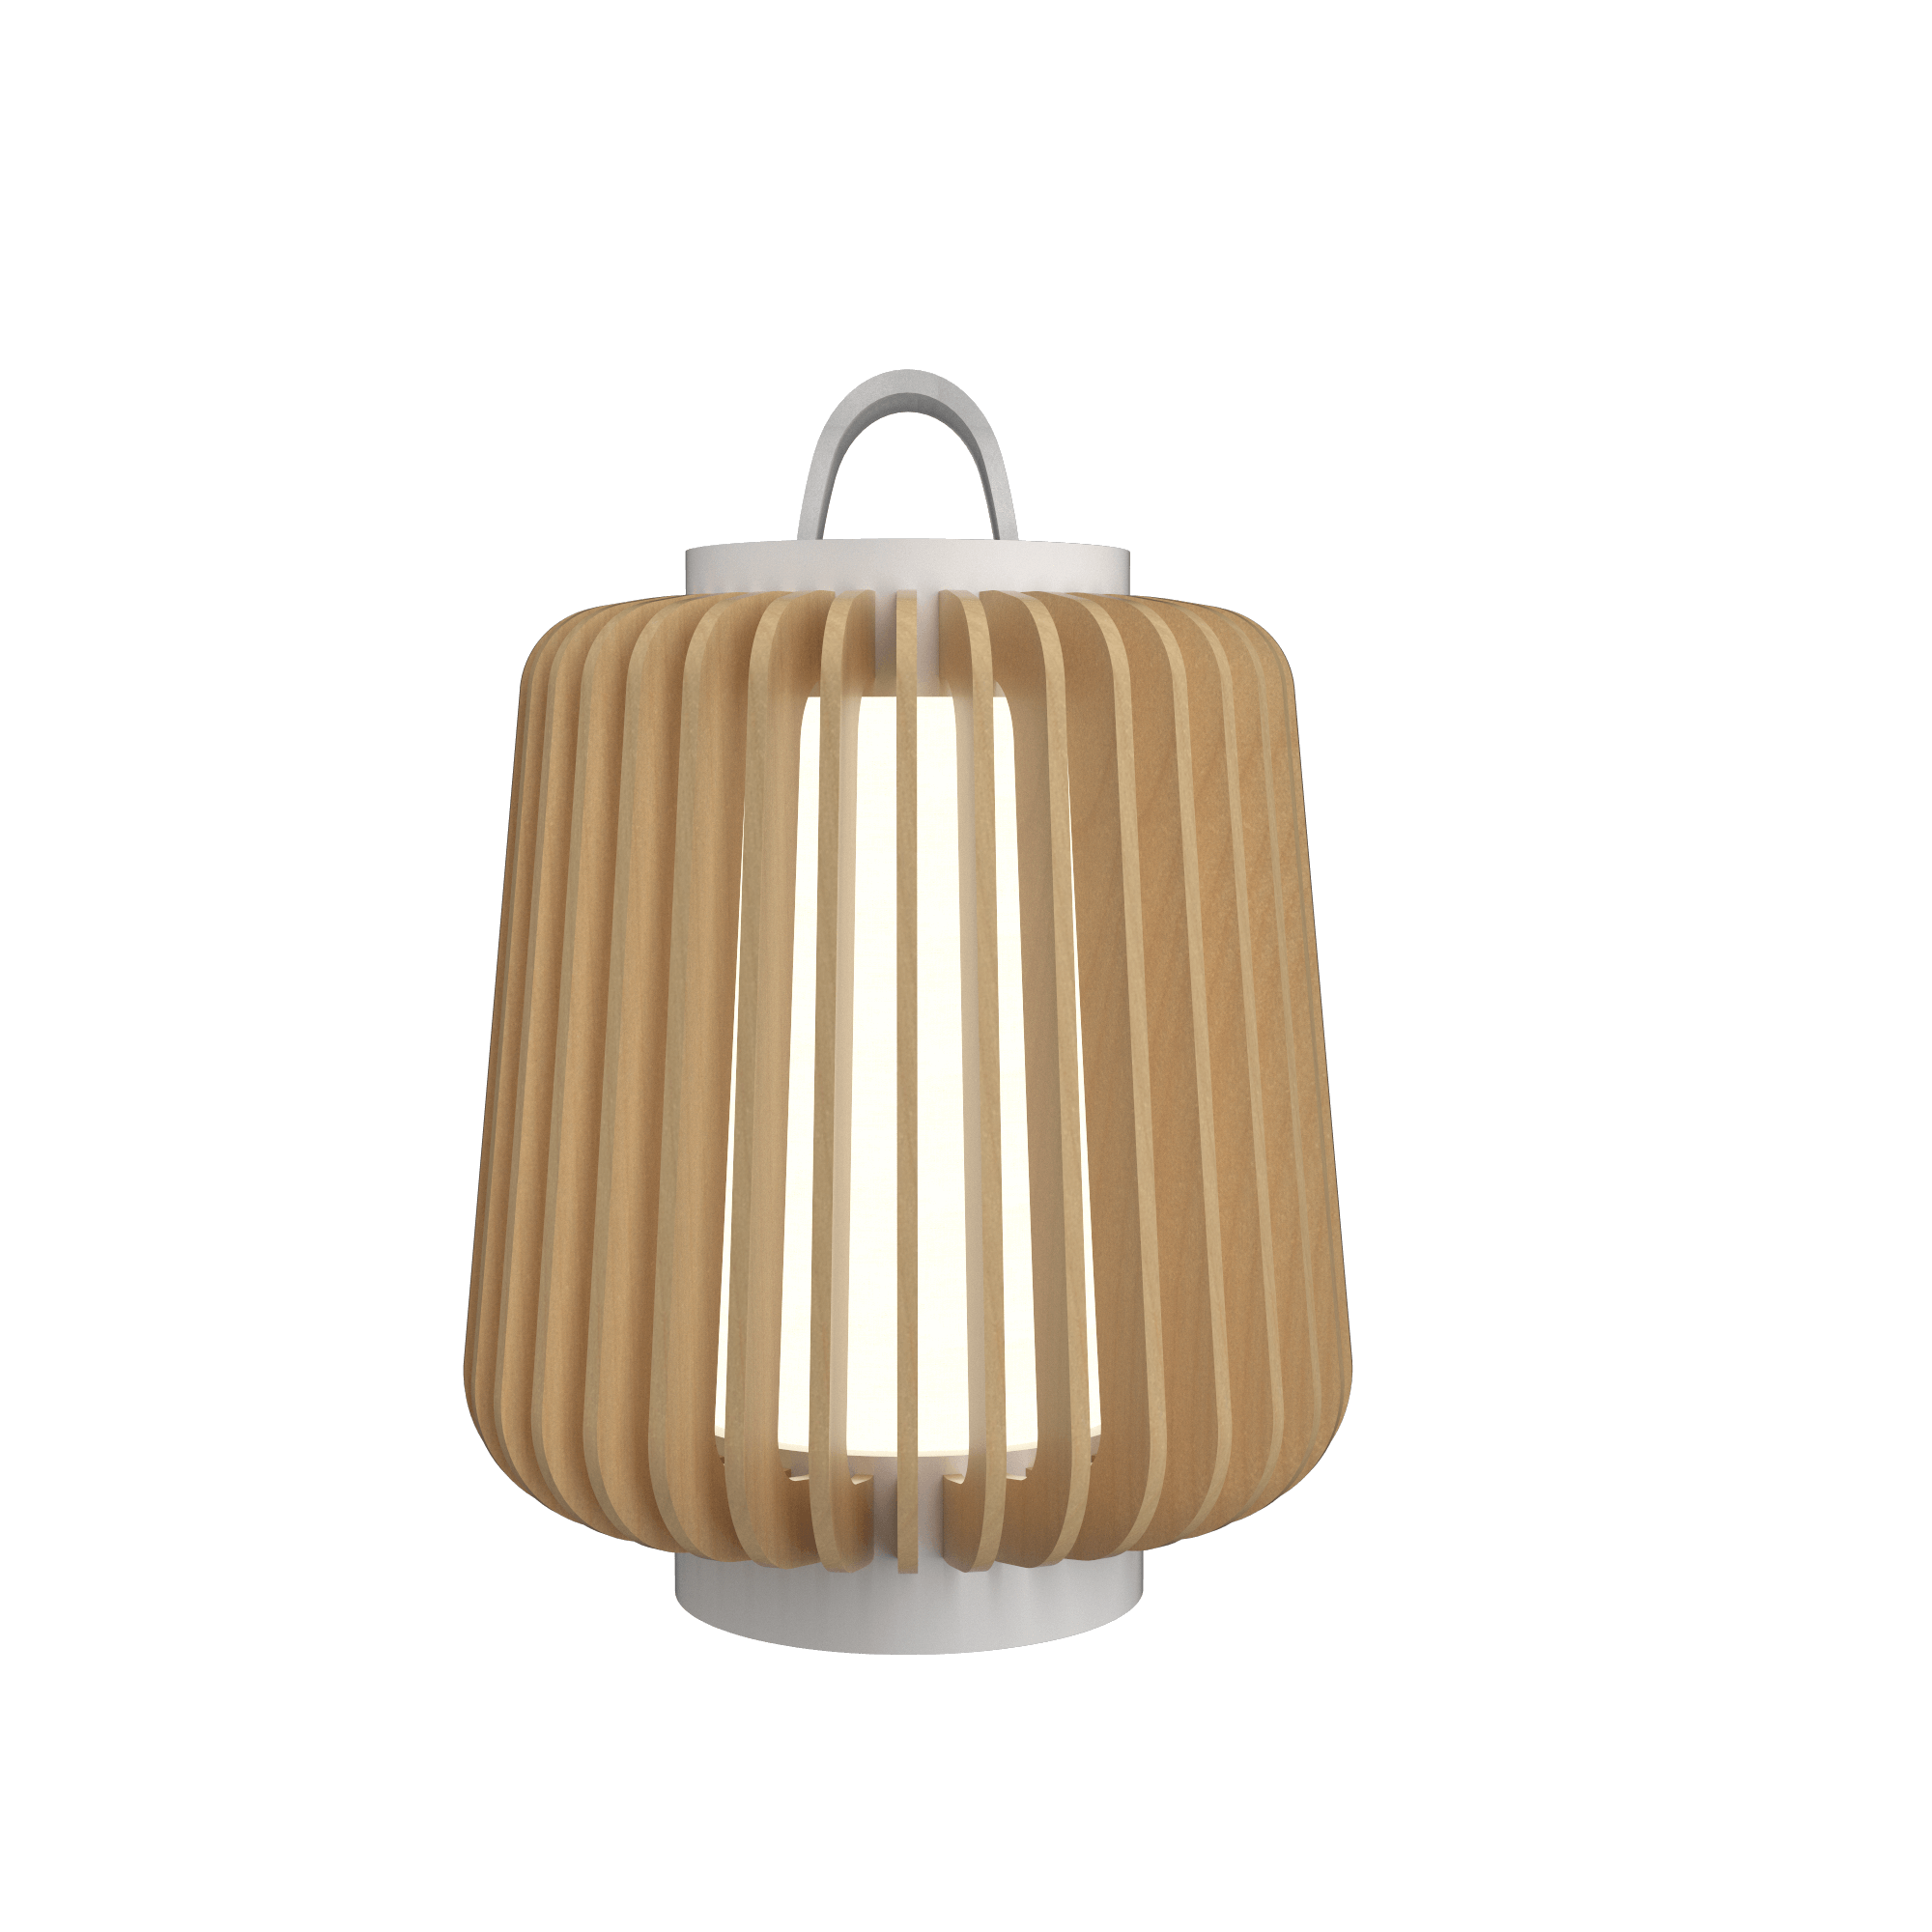 Table Lamp Accord Stecche Di Legno 7059 - Stecche Di Legno Line Accord Lighting | 34. Maple